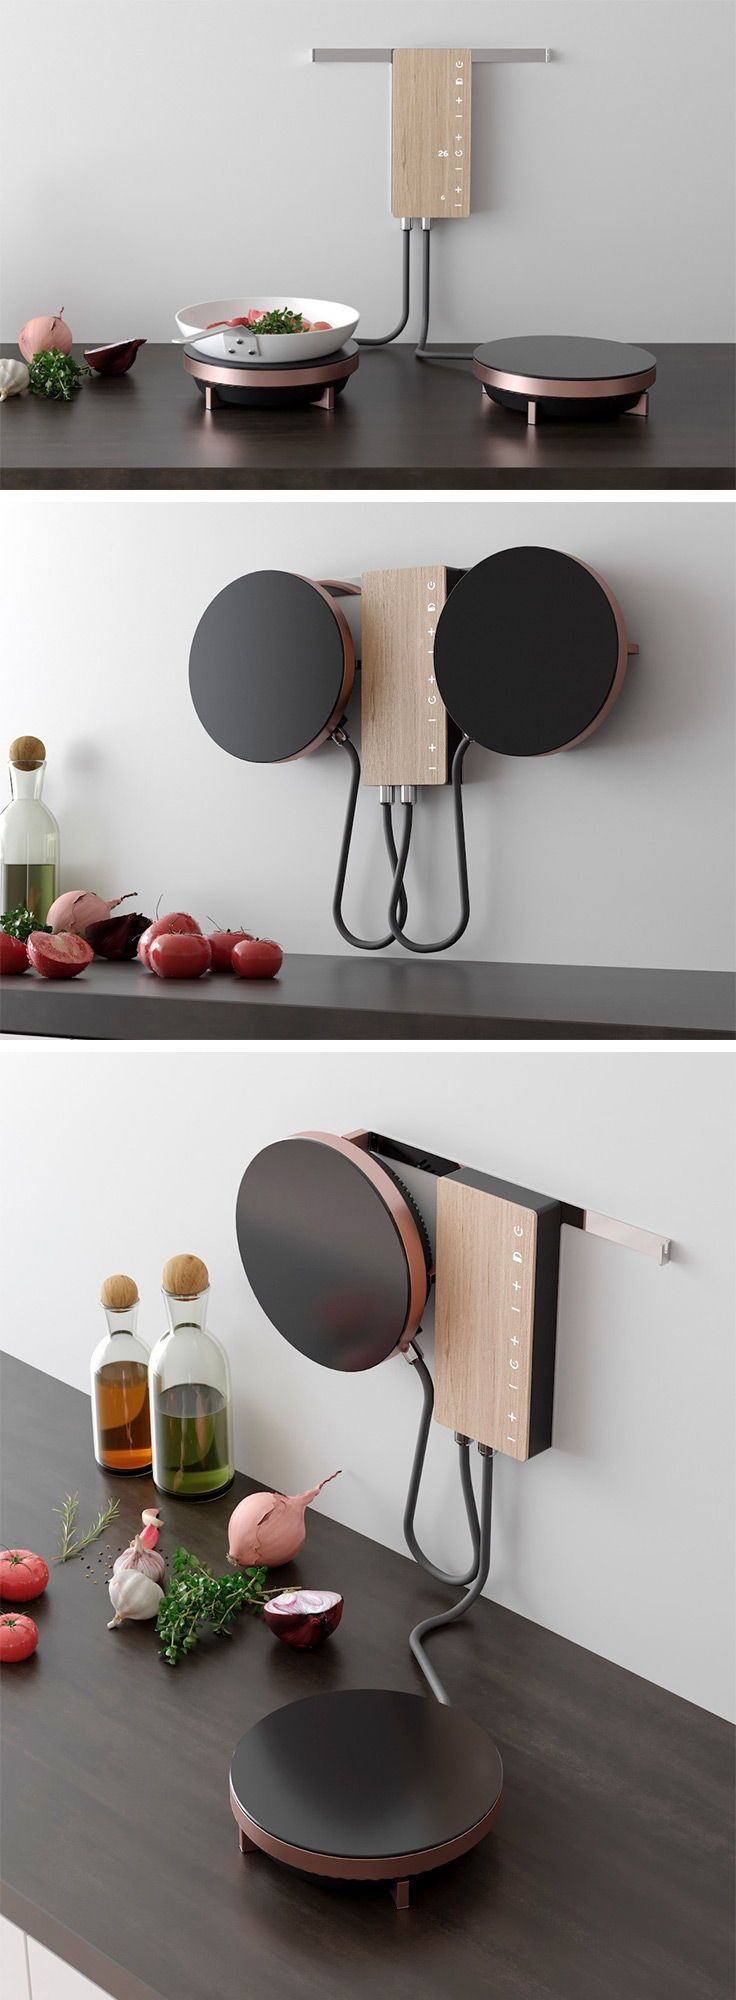 Ordine is an innovative cooking solution designed for the modern user. Optimized for small spaces, the design eliminates the need for a bulky traditional stove, clearing the way for more cabinet and counter space. The design features two hob units that are mounted on a central power hub on the wall. Elevated neatly out of the way, the user must simply grab one or both hobs off the wall and set the desired temperature to activate.